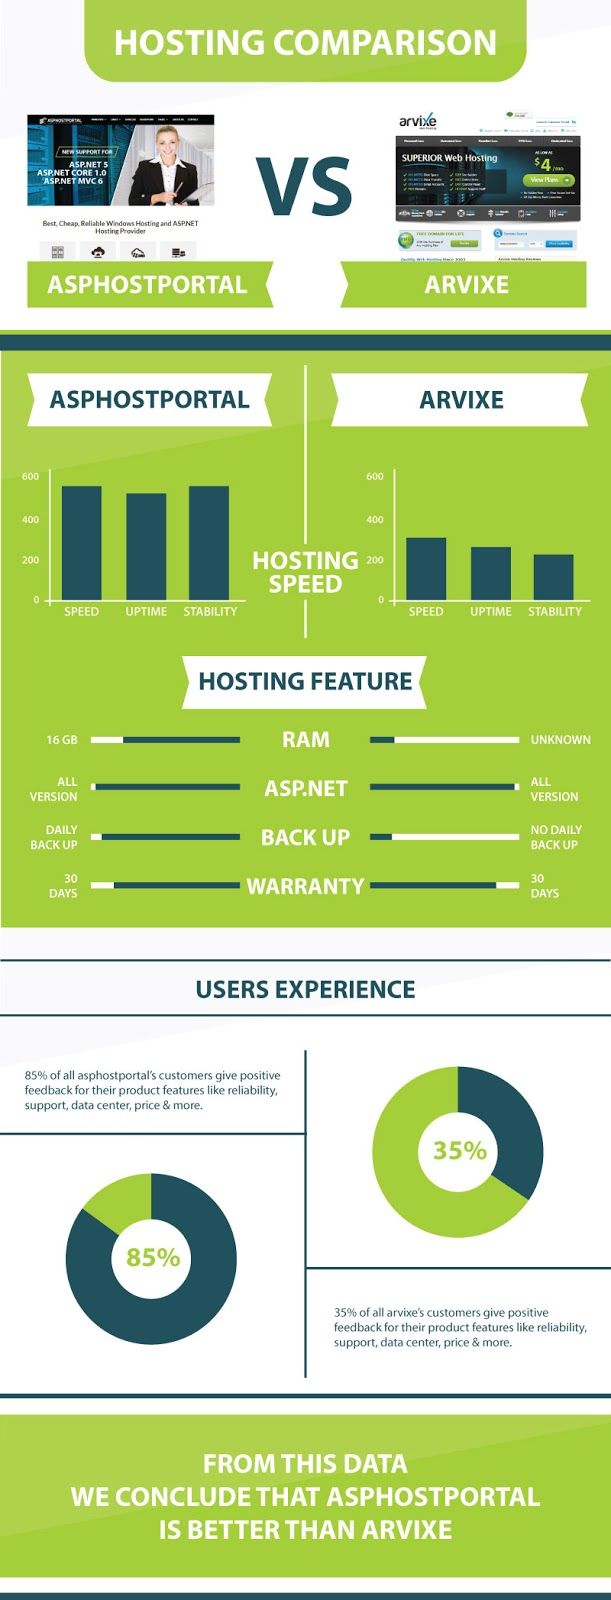 ASP.NET Core 1.0 Hosting Comparison | ASPHostPortal Vs Arvixe | Explained With Infographic